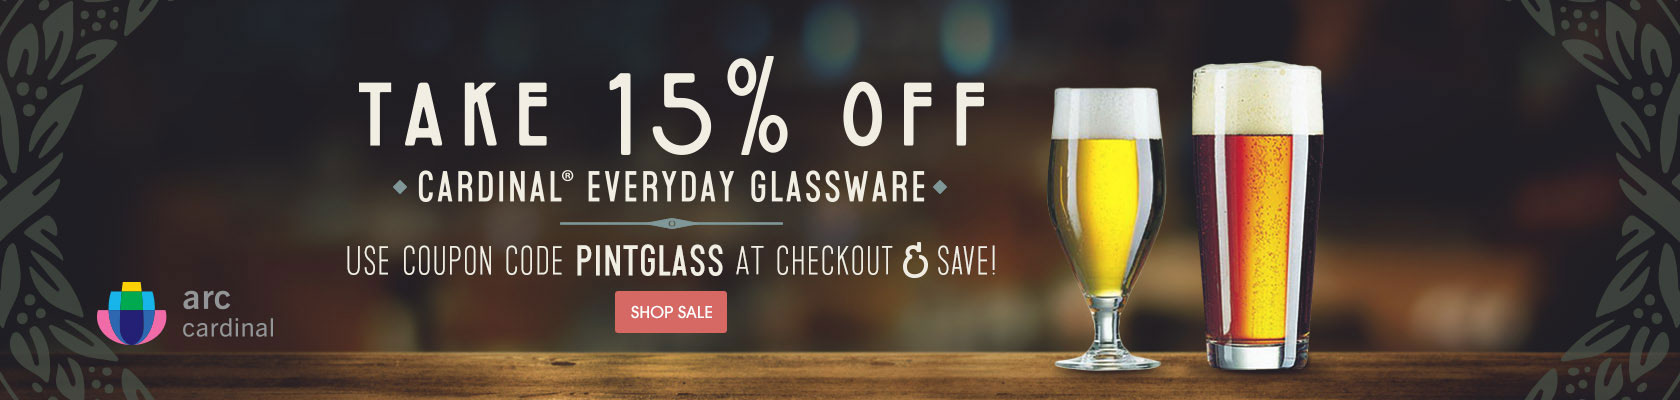 Take 15% off Cardinal® everyday glassware